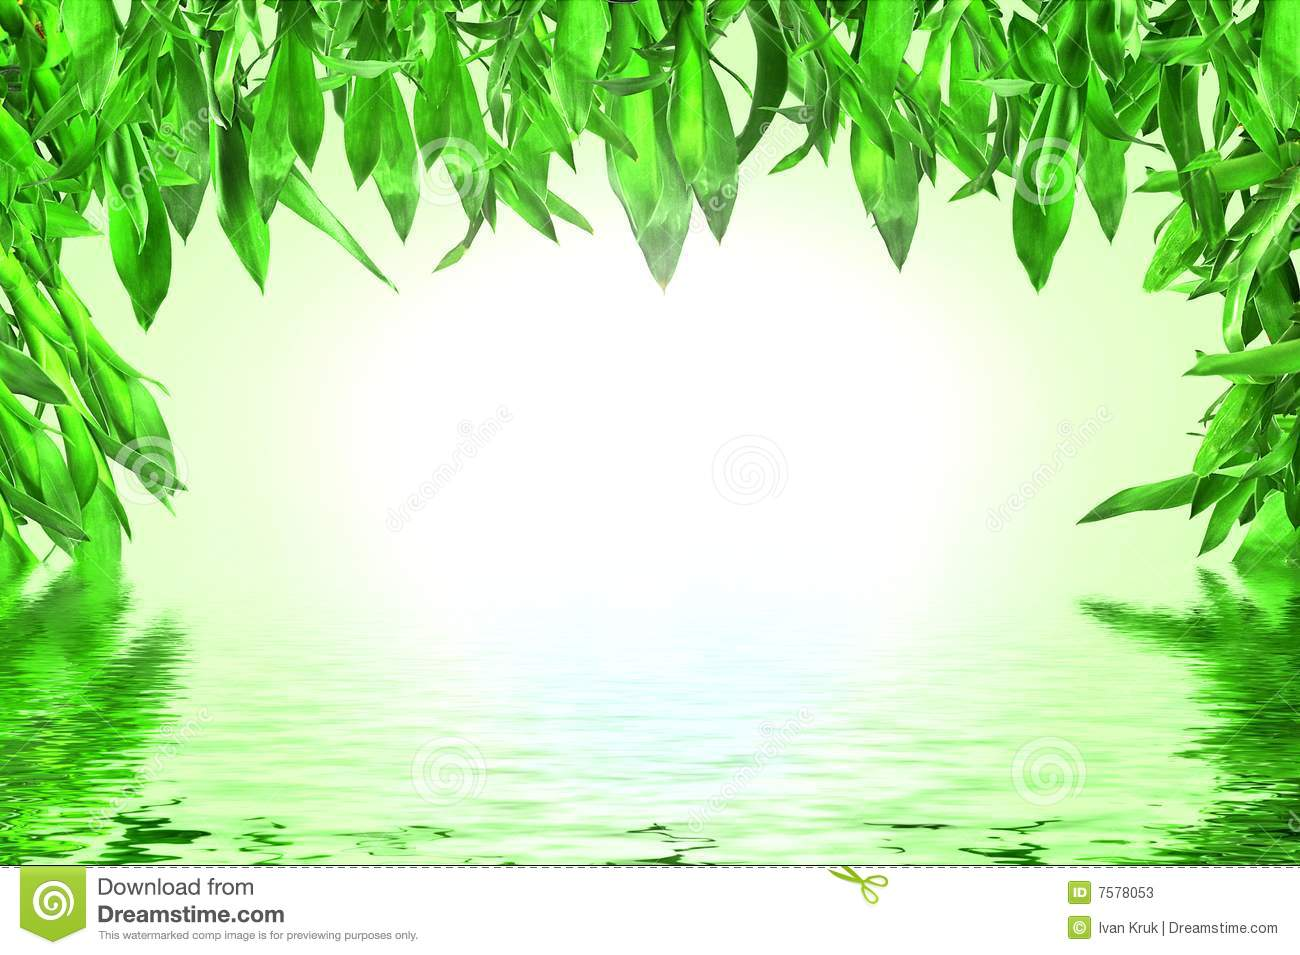 Bamboo leaves with water reflection